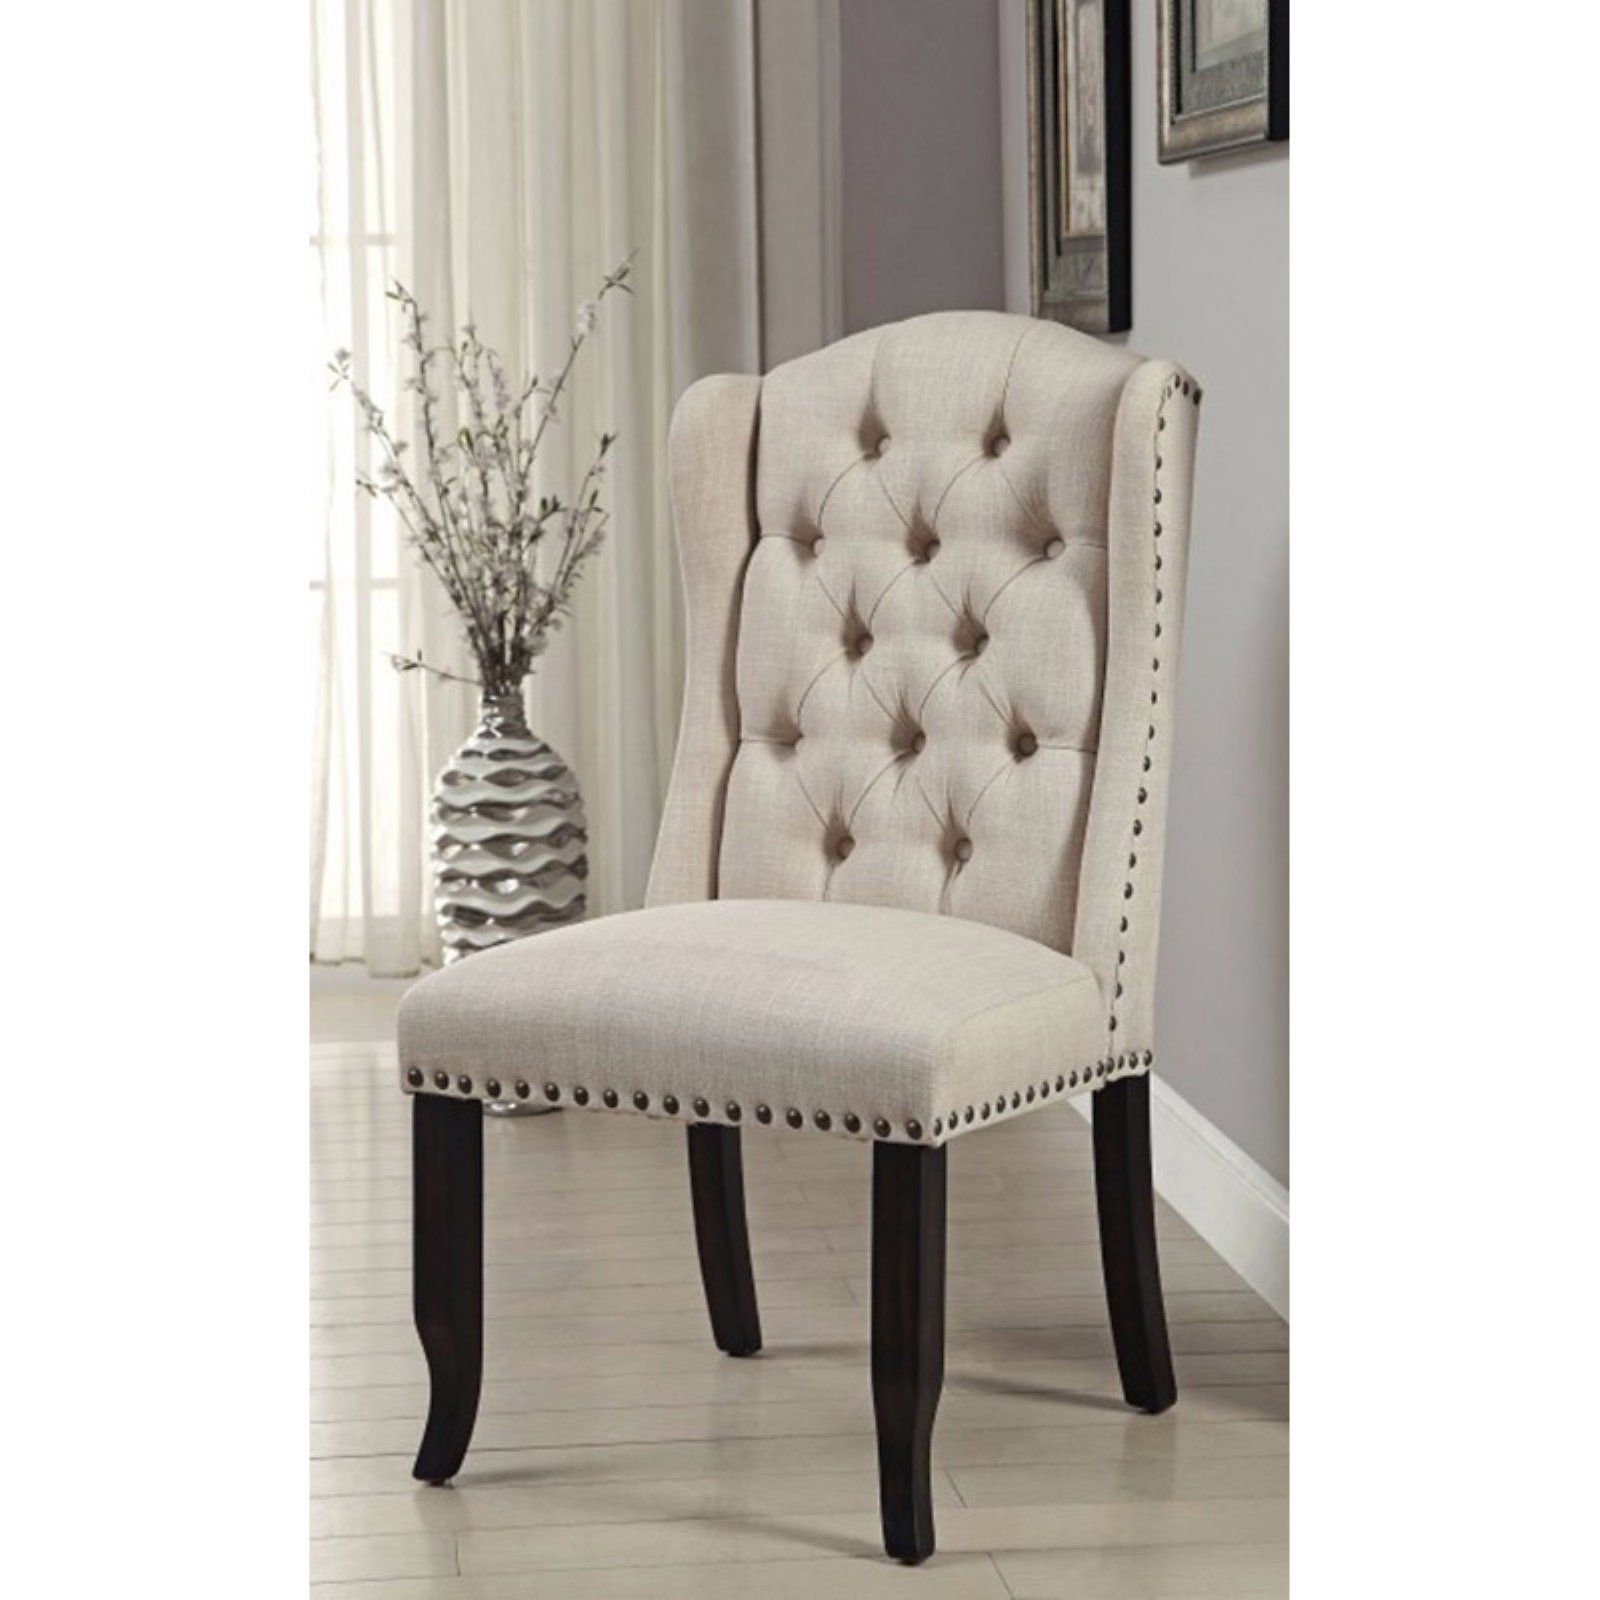 Benzara Sania I Upholstered Wingback Dining Chair Set Of 2 Dining Chairs Wingback Dining Chair Side Chairs Dining